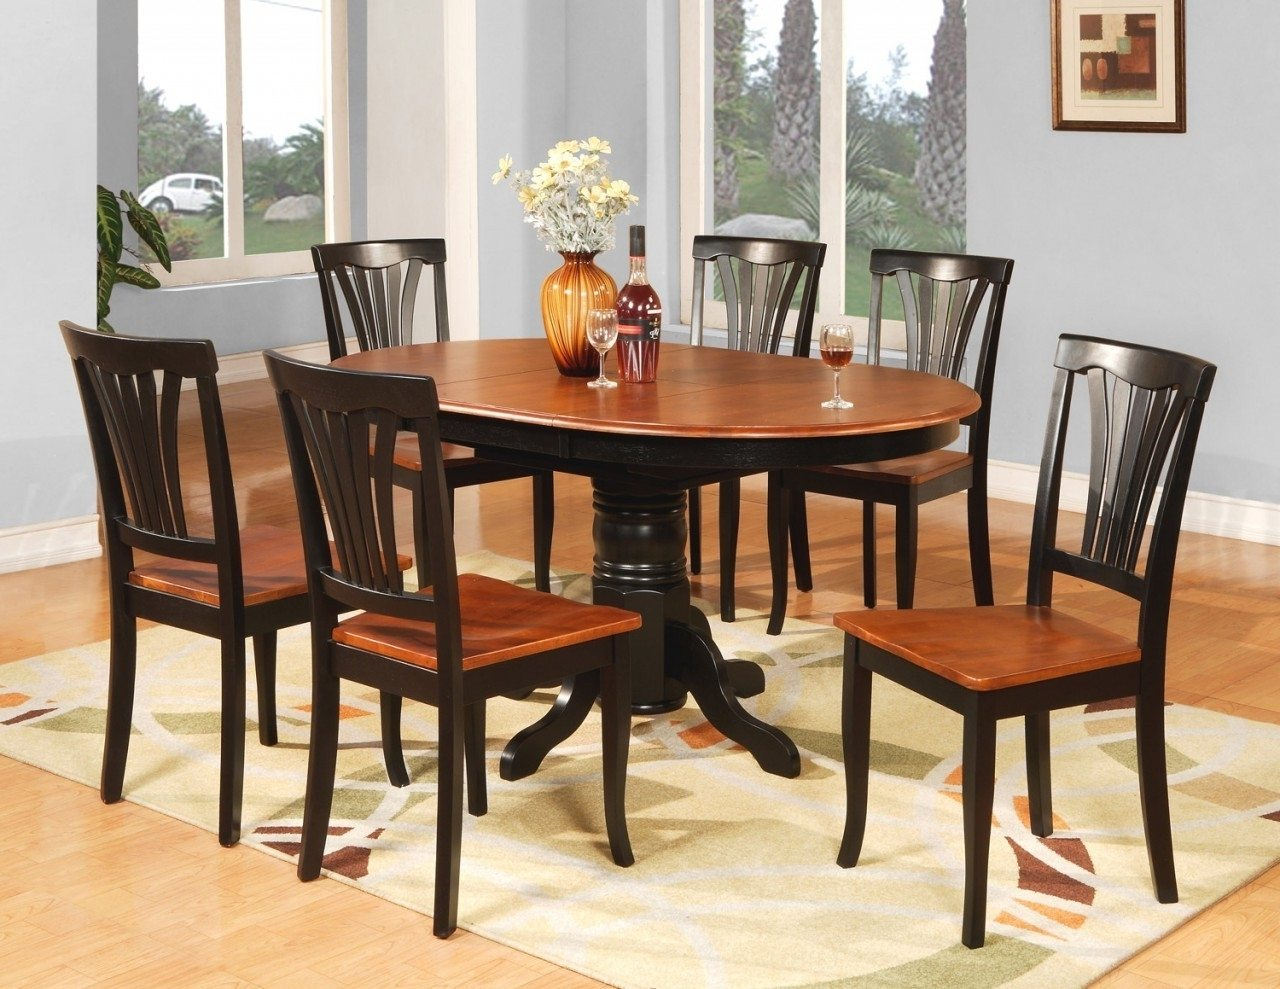 Cheap dining room tables chairs how to bargain for for Cheap dining room chairs